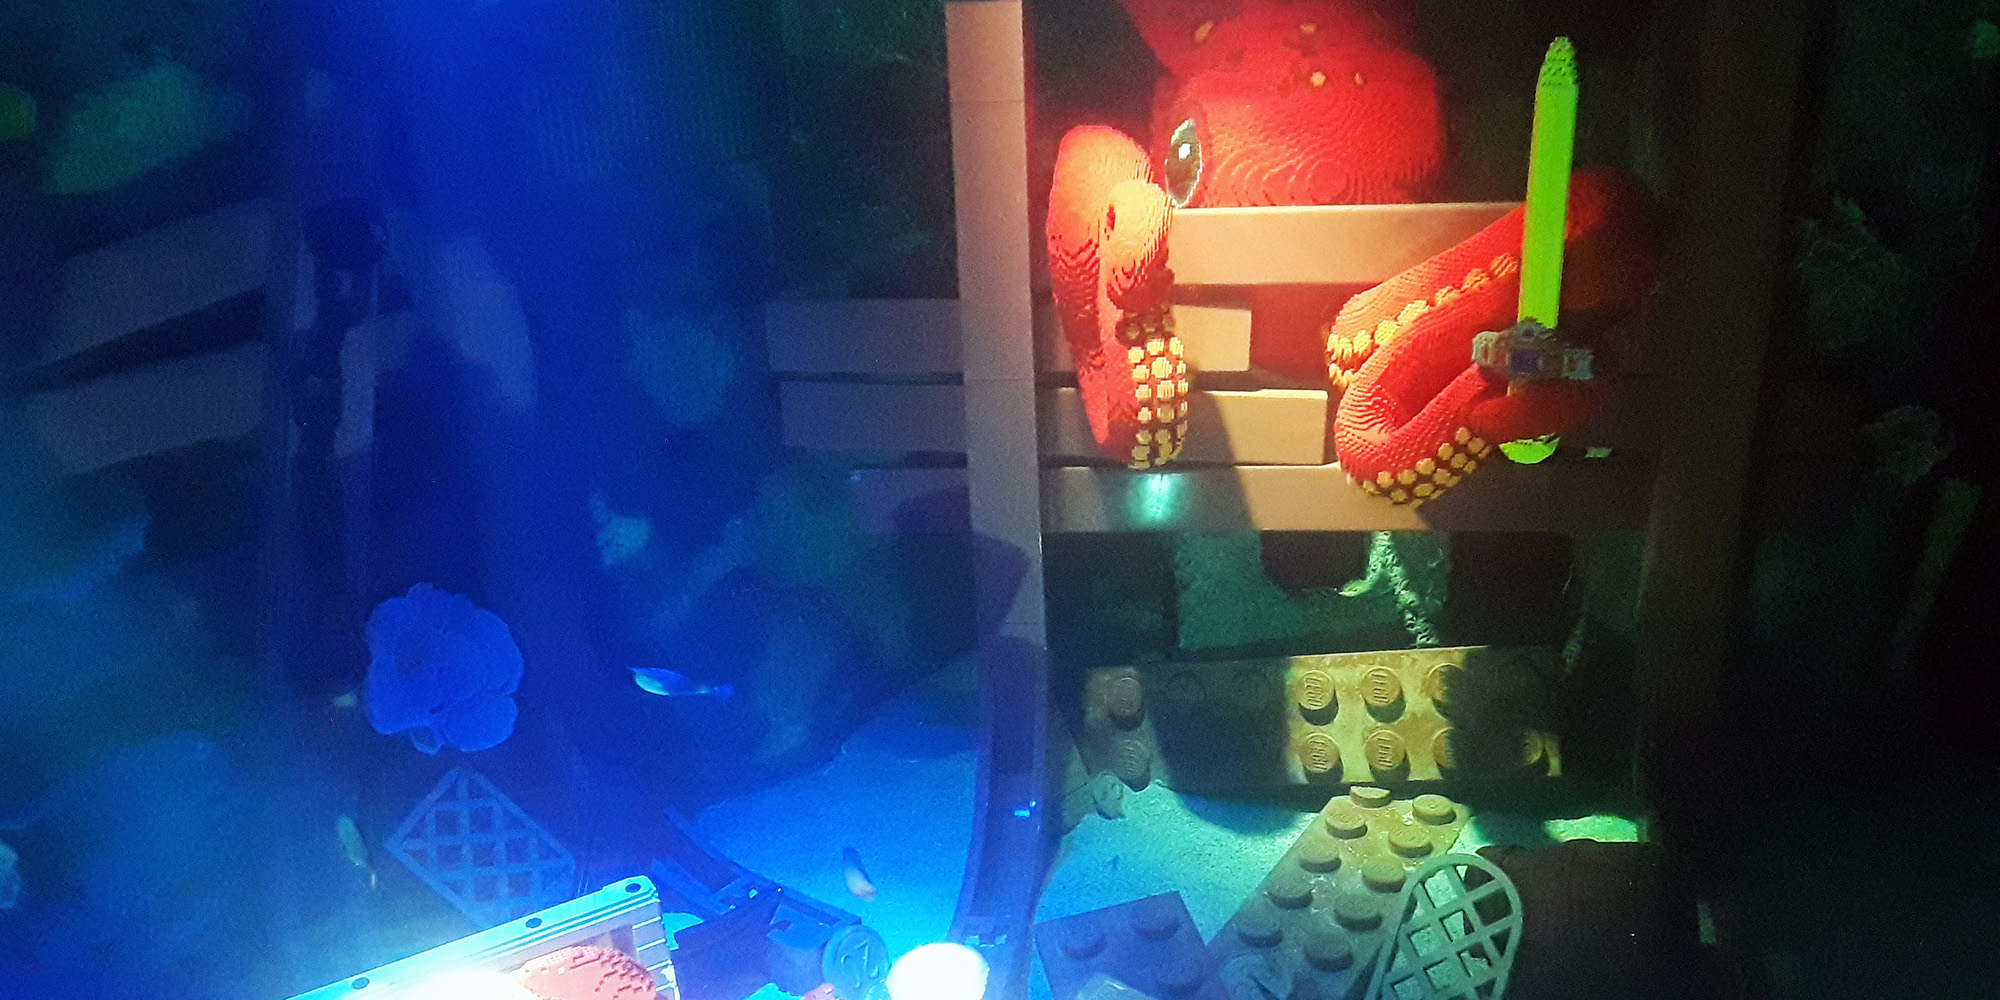 Lego octopus theming_2000x1000